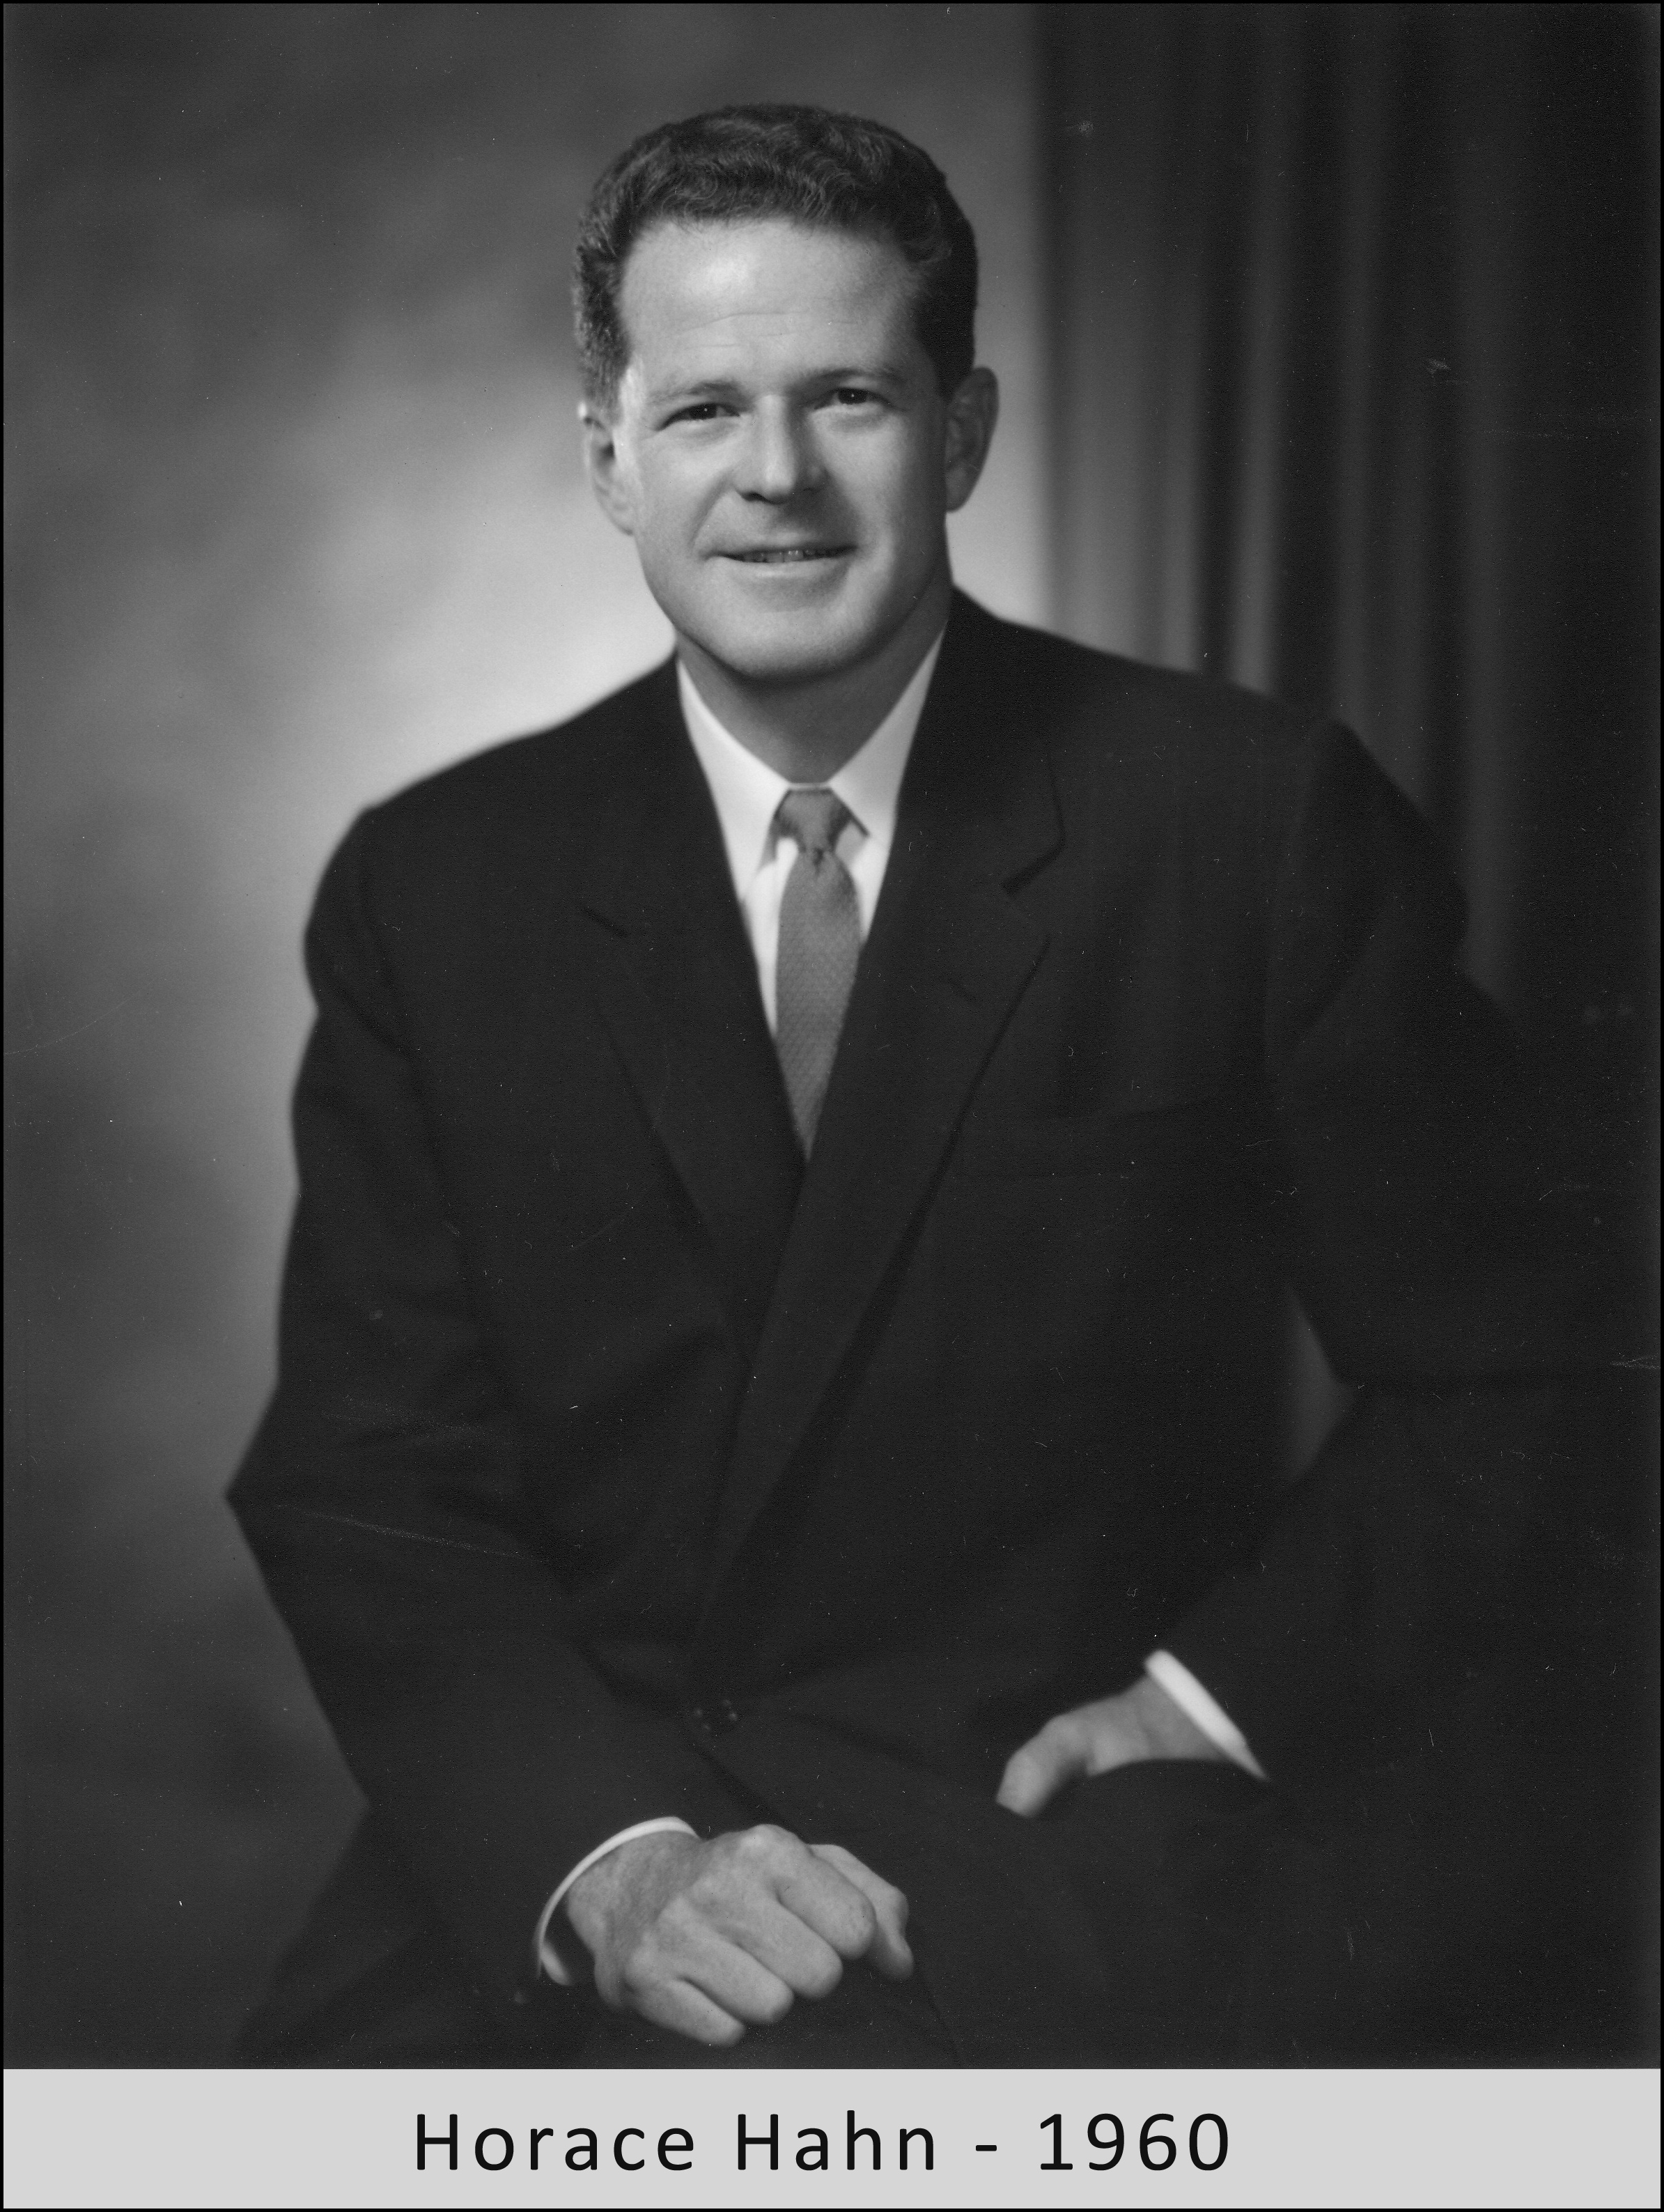 Horace Hahn in 1960